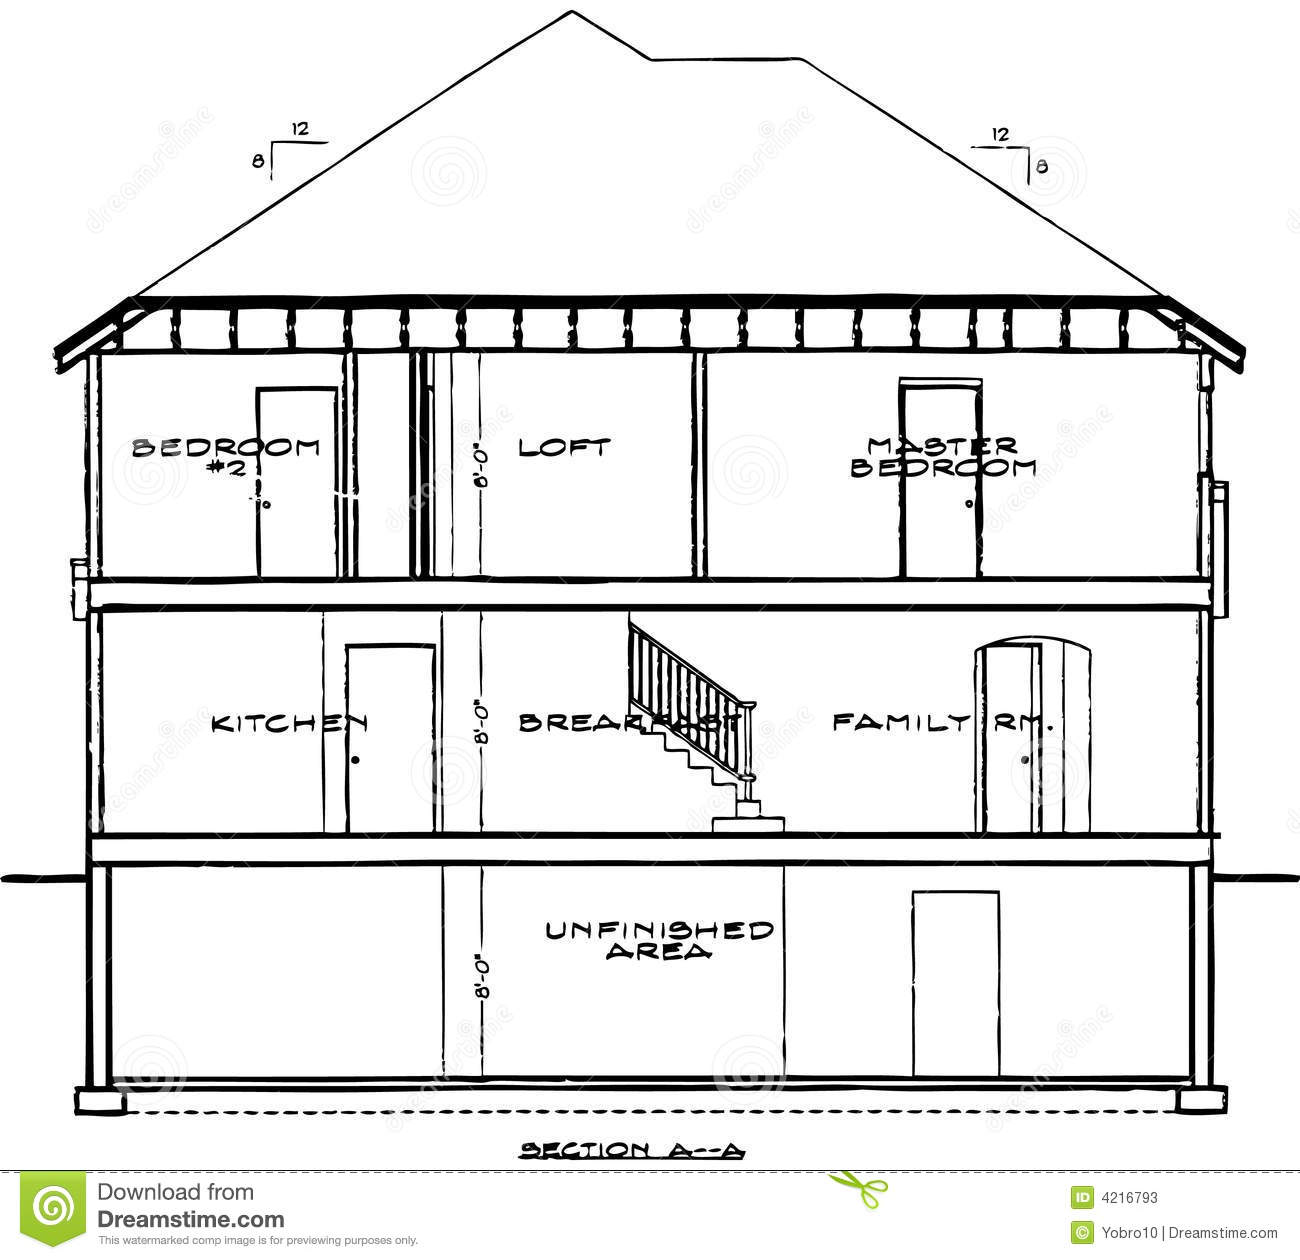 House blueprint stock photos image 4216793 for Blueprints for my house